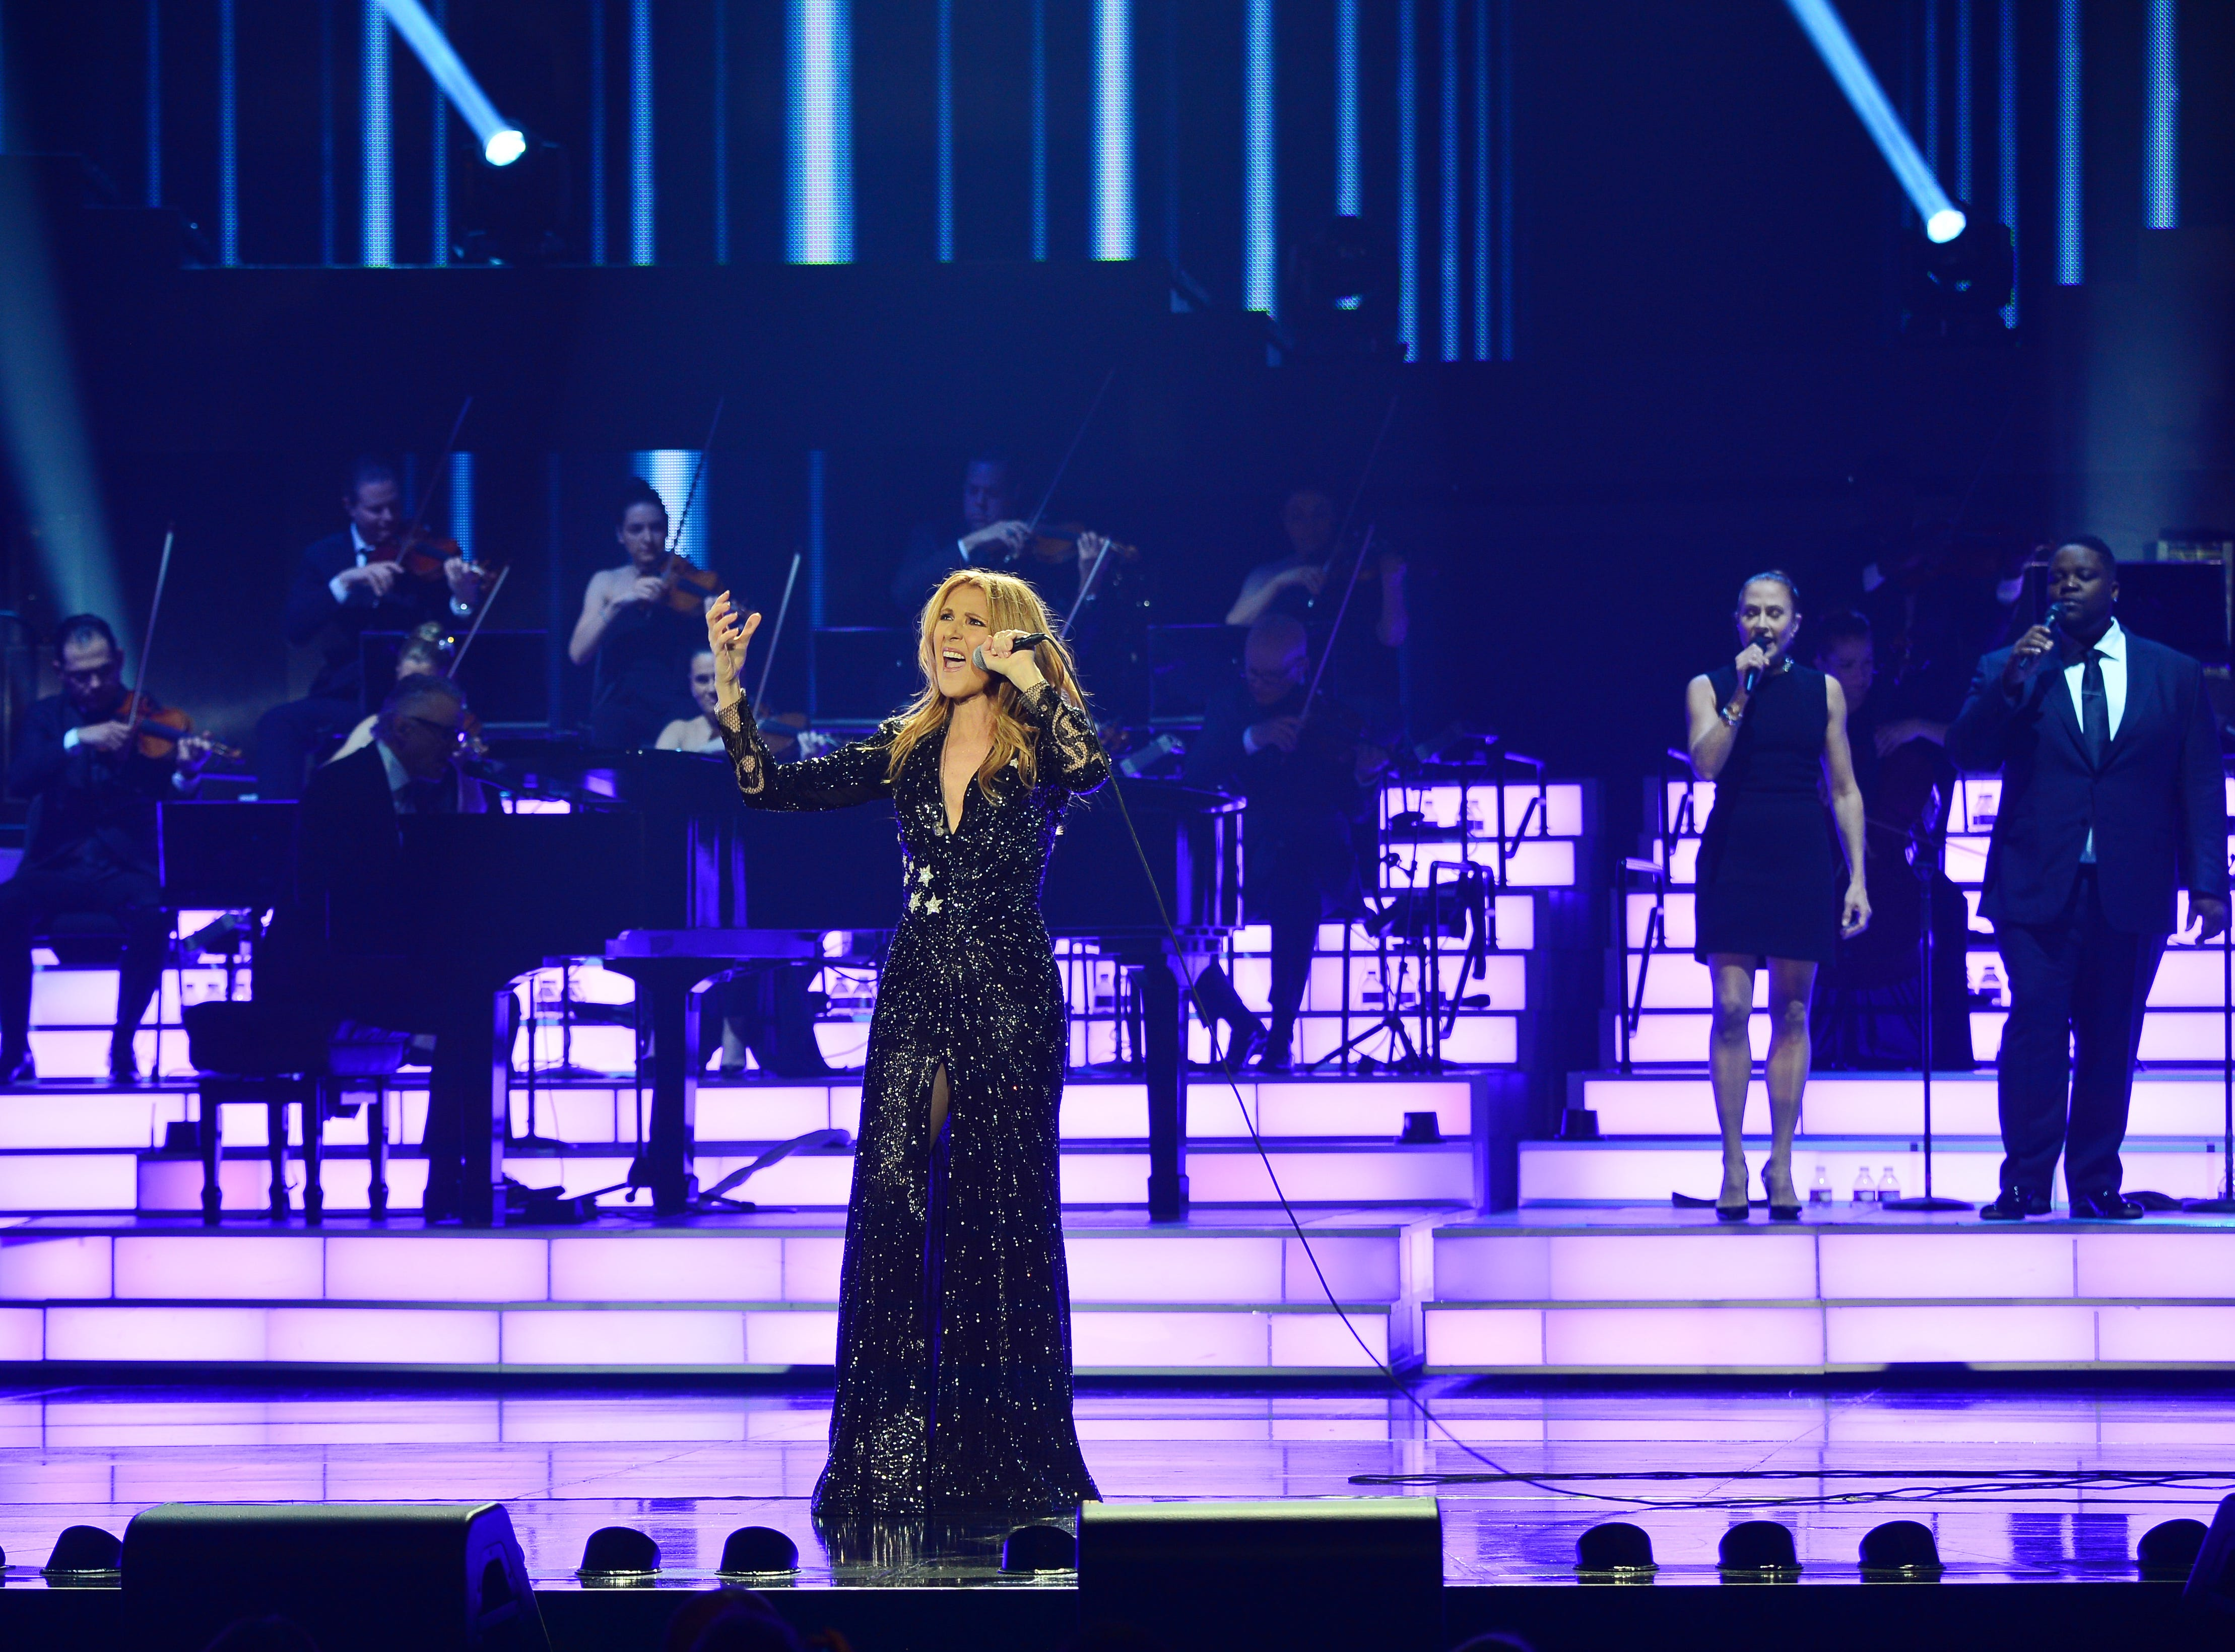 Celine Dion performs at the Colosseum at Caesars Palace in Las Vegas on Feb. 23, 2016. Her second residency comes to an end on June 8, 2018.